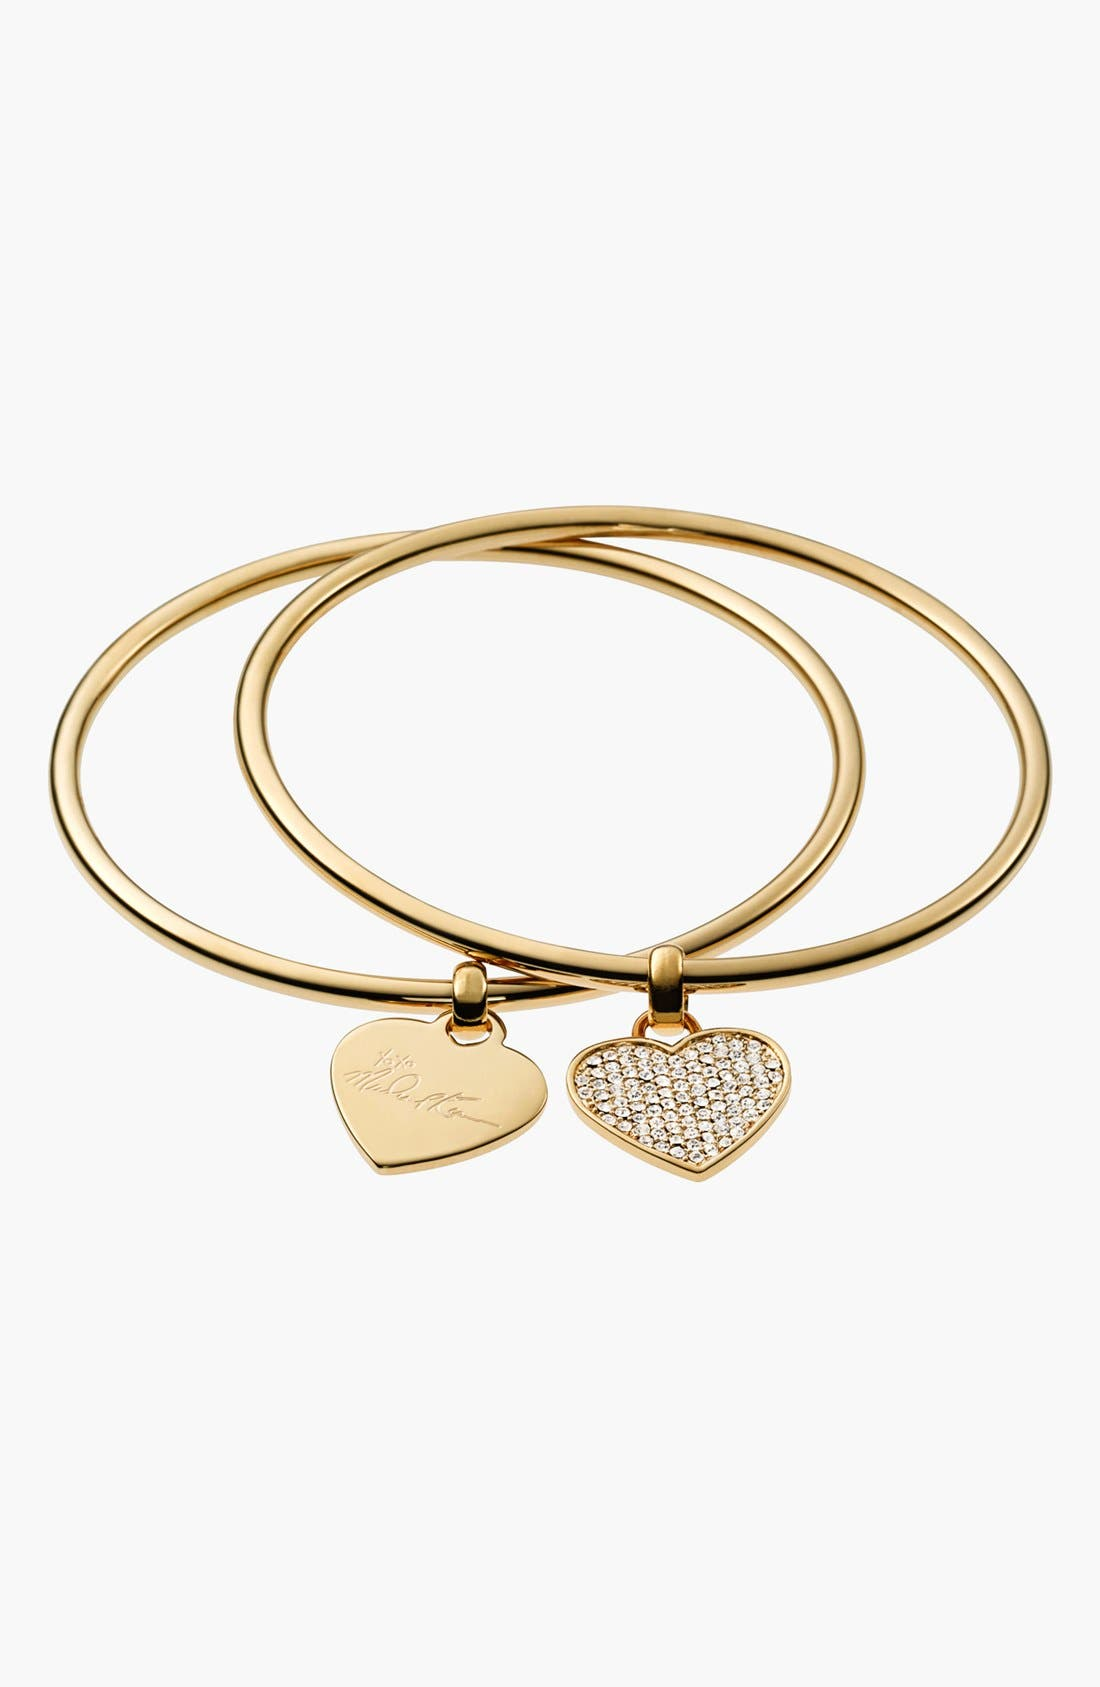 Alternate Image 1 Selected - Michael Kors Boxed Heart Charm Bangles (Set of 2)